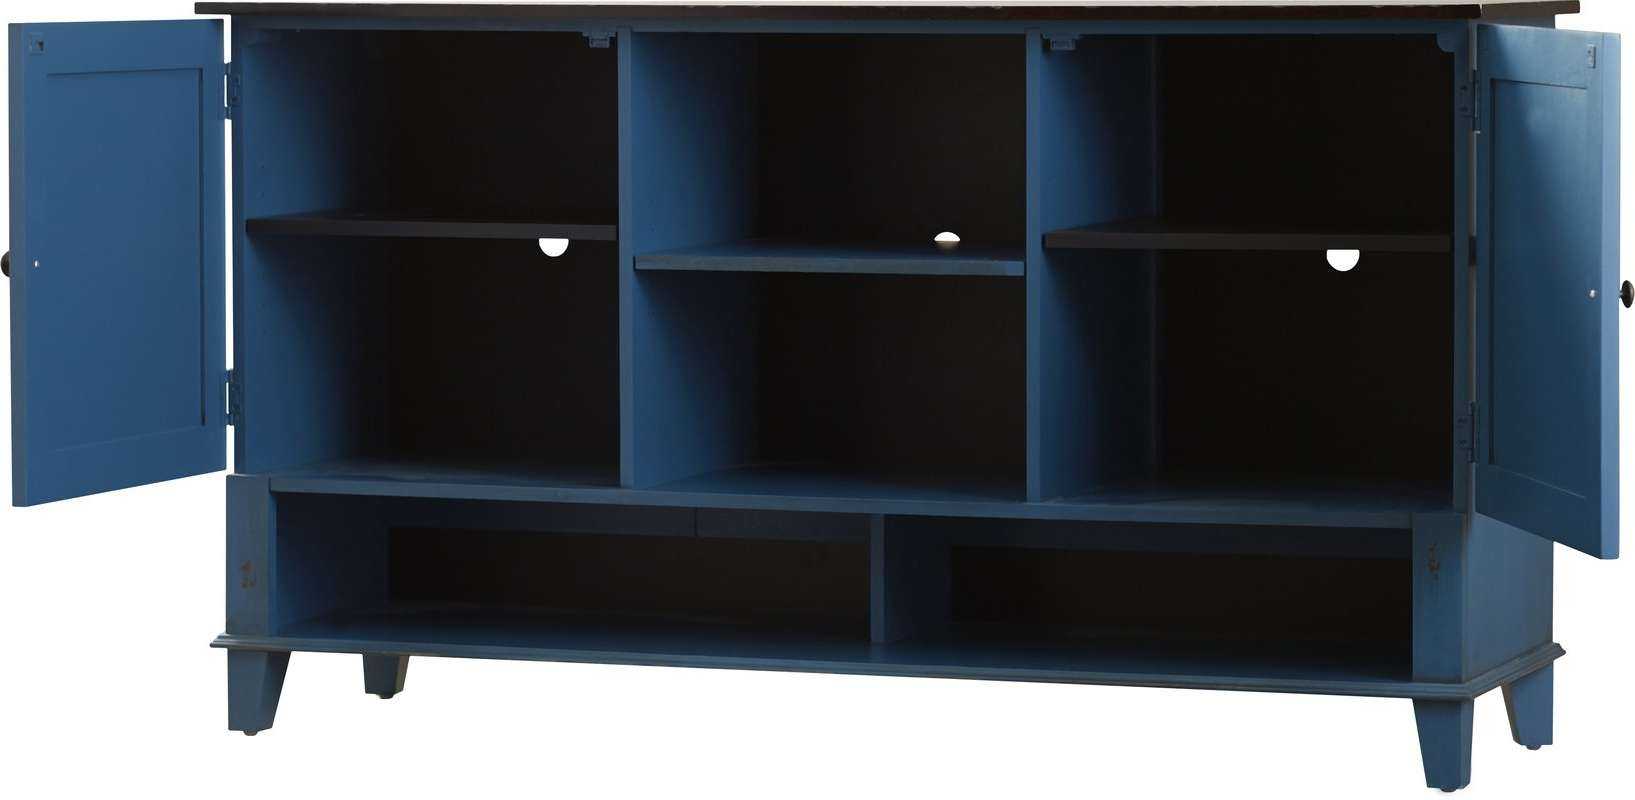 """Kathy Ireland Homemartin Furniture Eclectic Deluxe 60"""" Tv For Eclectic Sideboards (View 19 of 20)"""